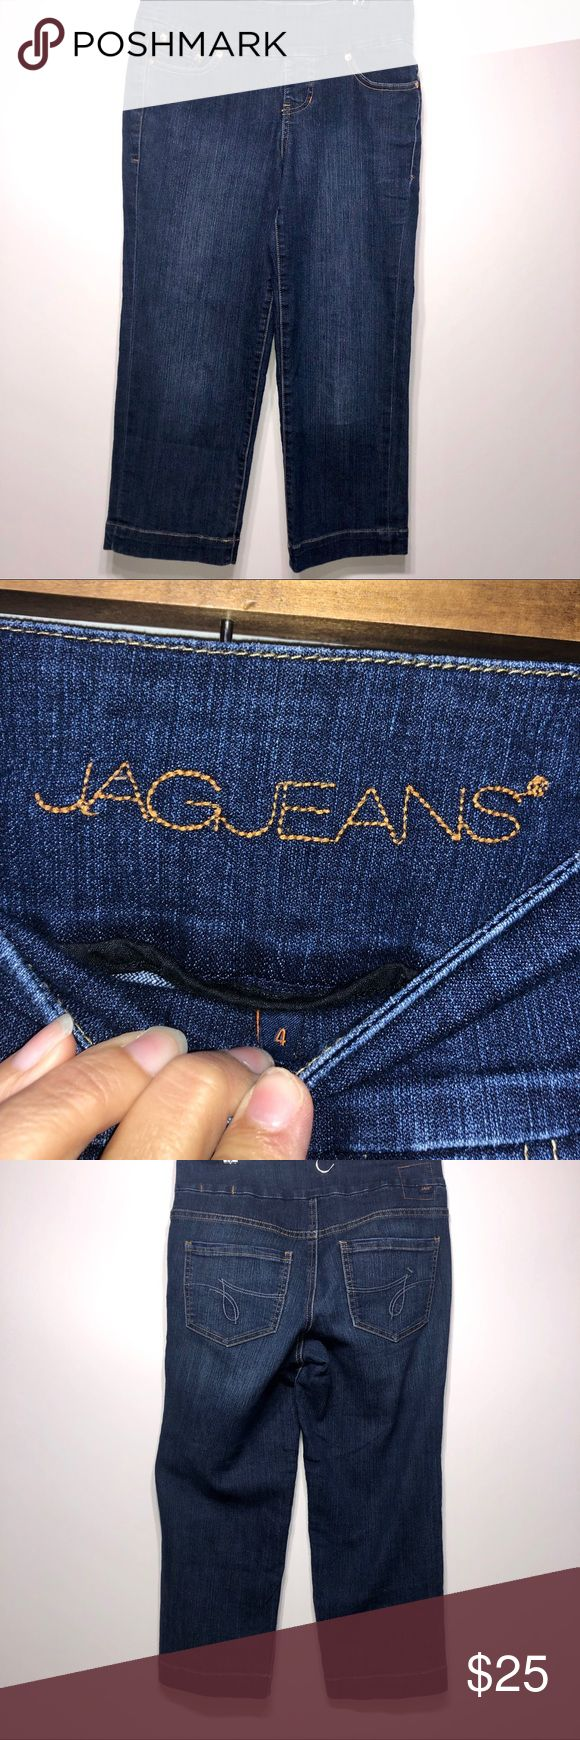 Jag Jeans Cropped Stretch Tummy Control Size 4 Jag…